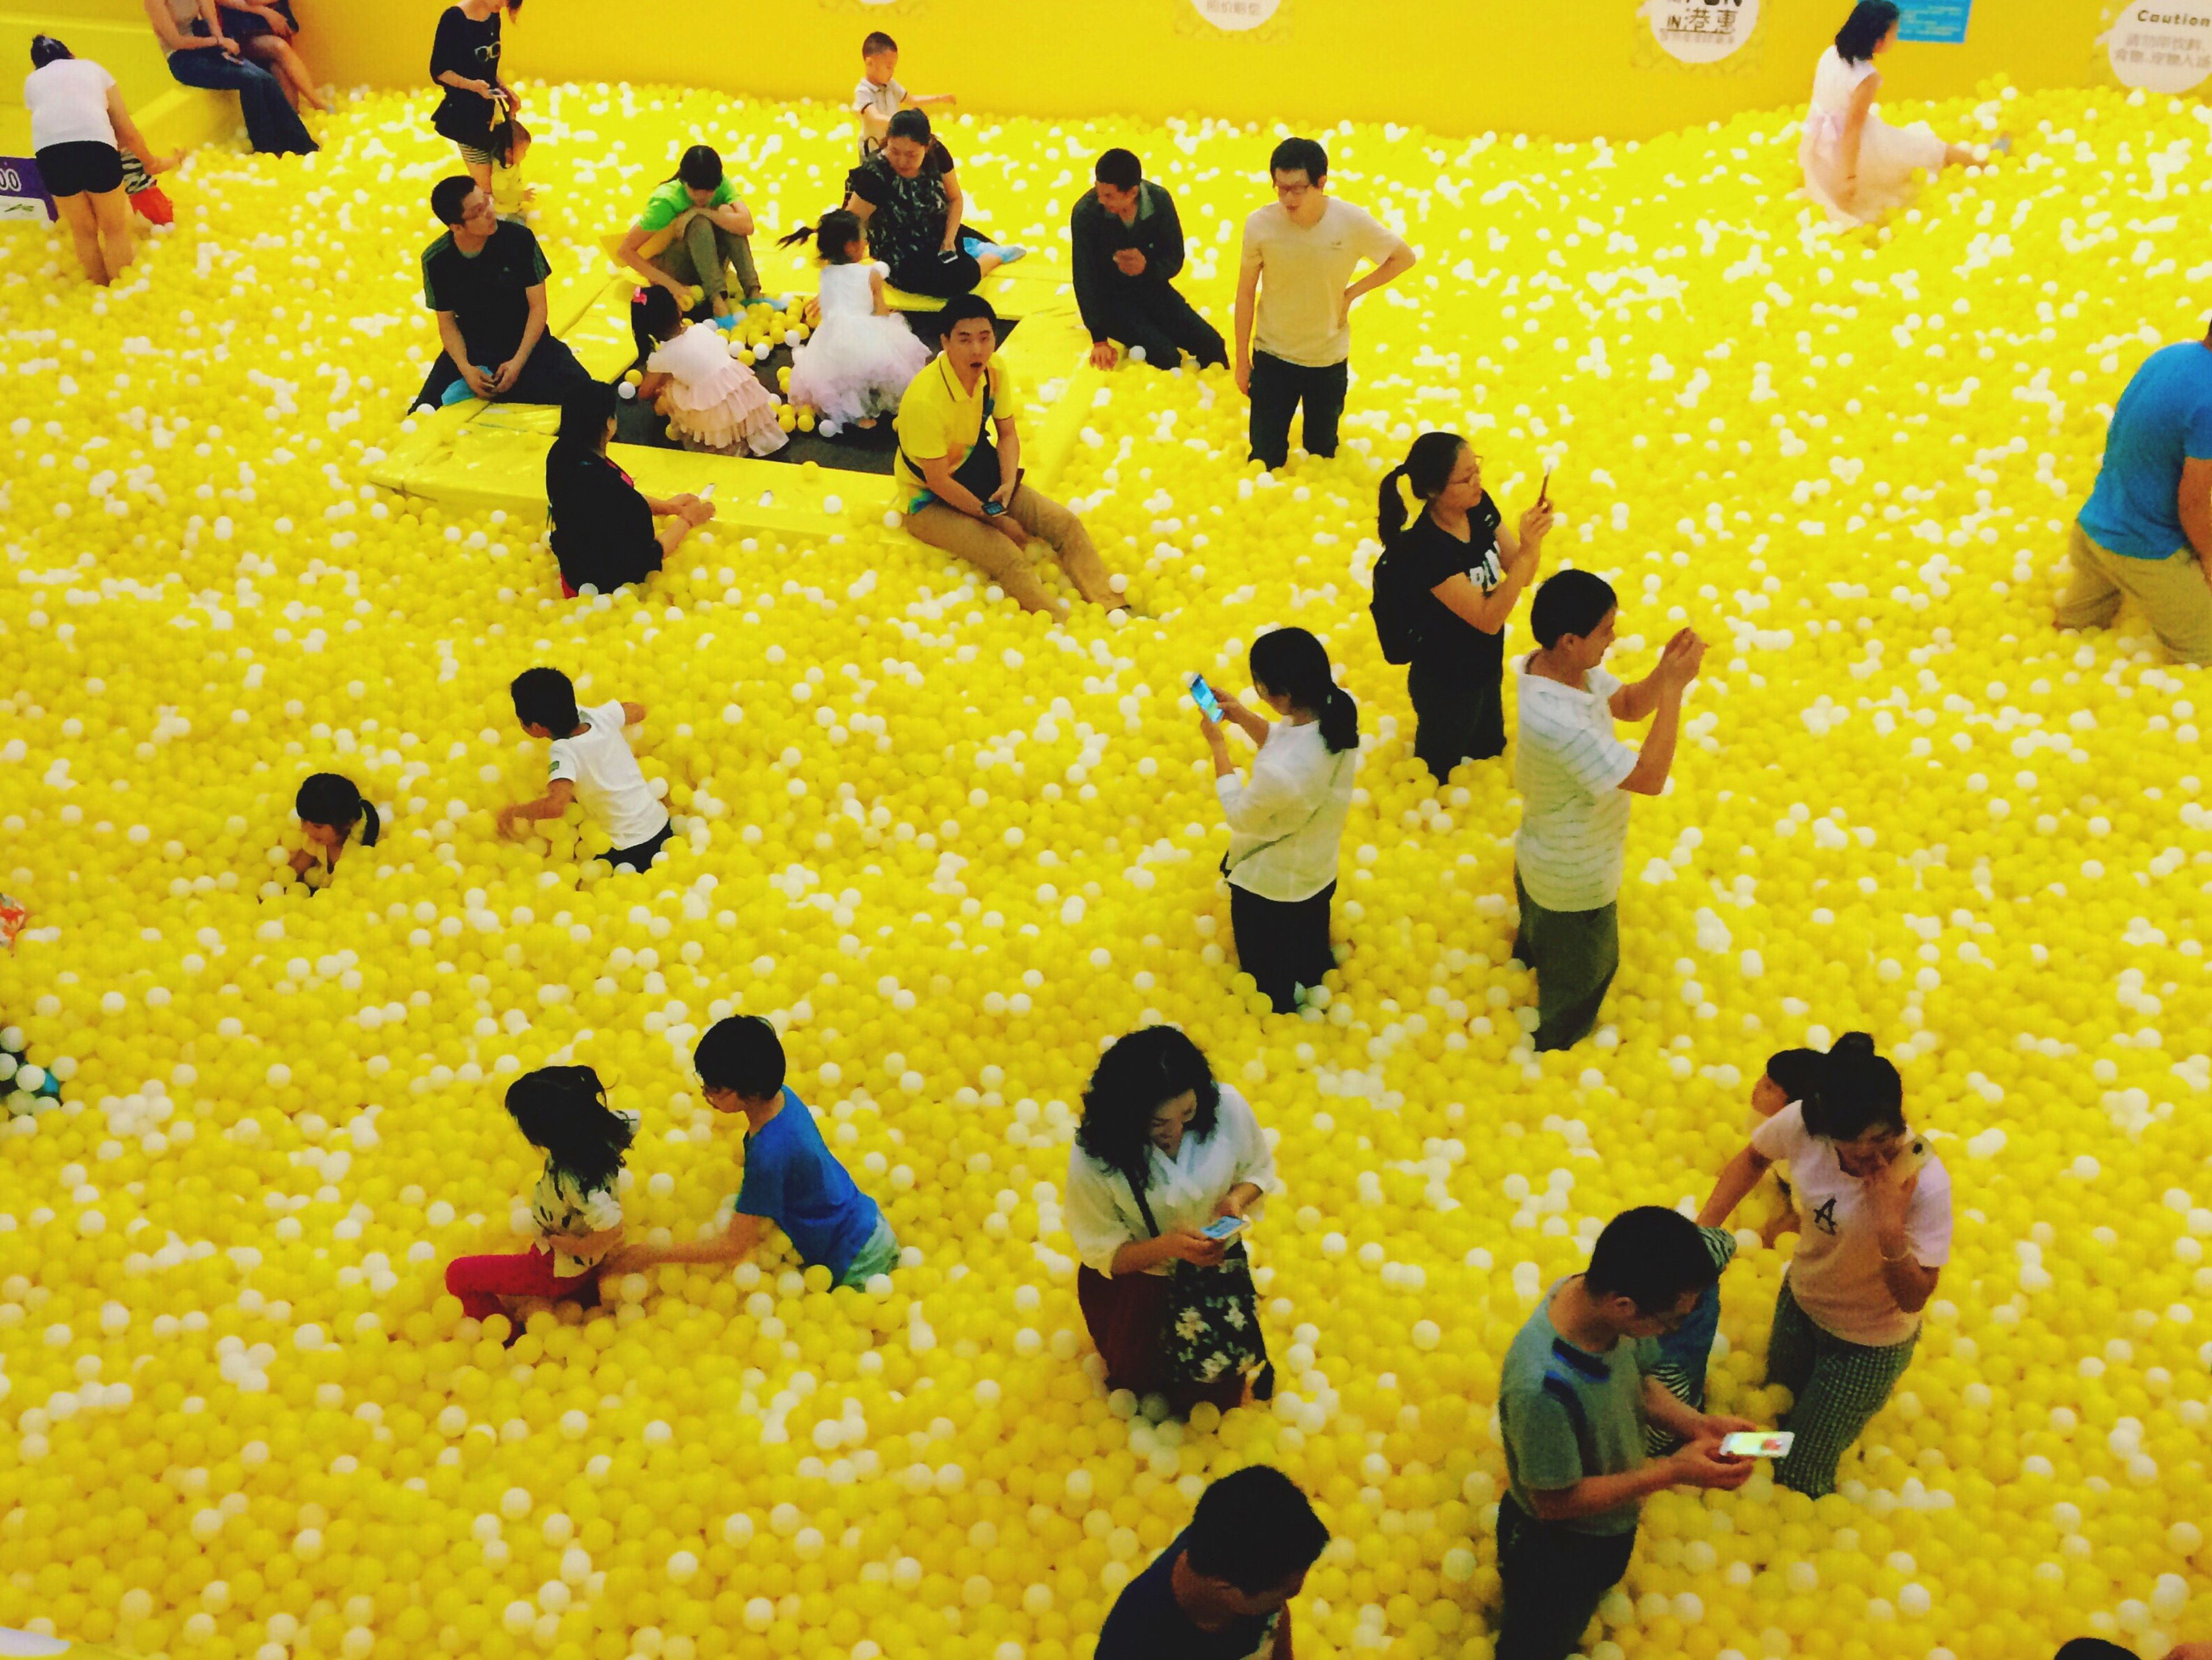 Children's Games People Yellow People Taking Photos Parents And Children Waiting For Their Children People Activity VSCO Snapseed EyeEm Parents spending time with their Children.